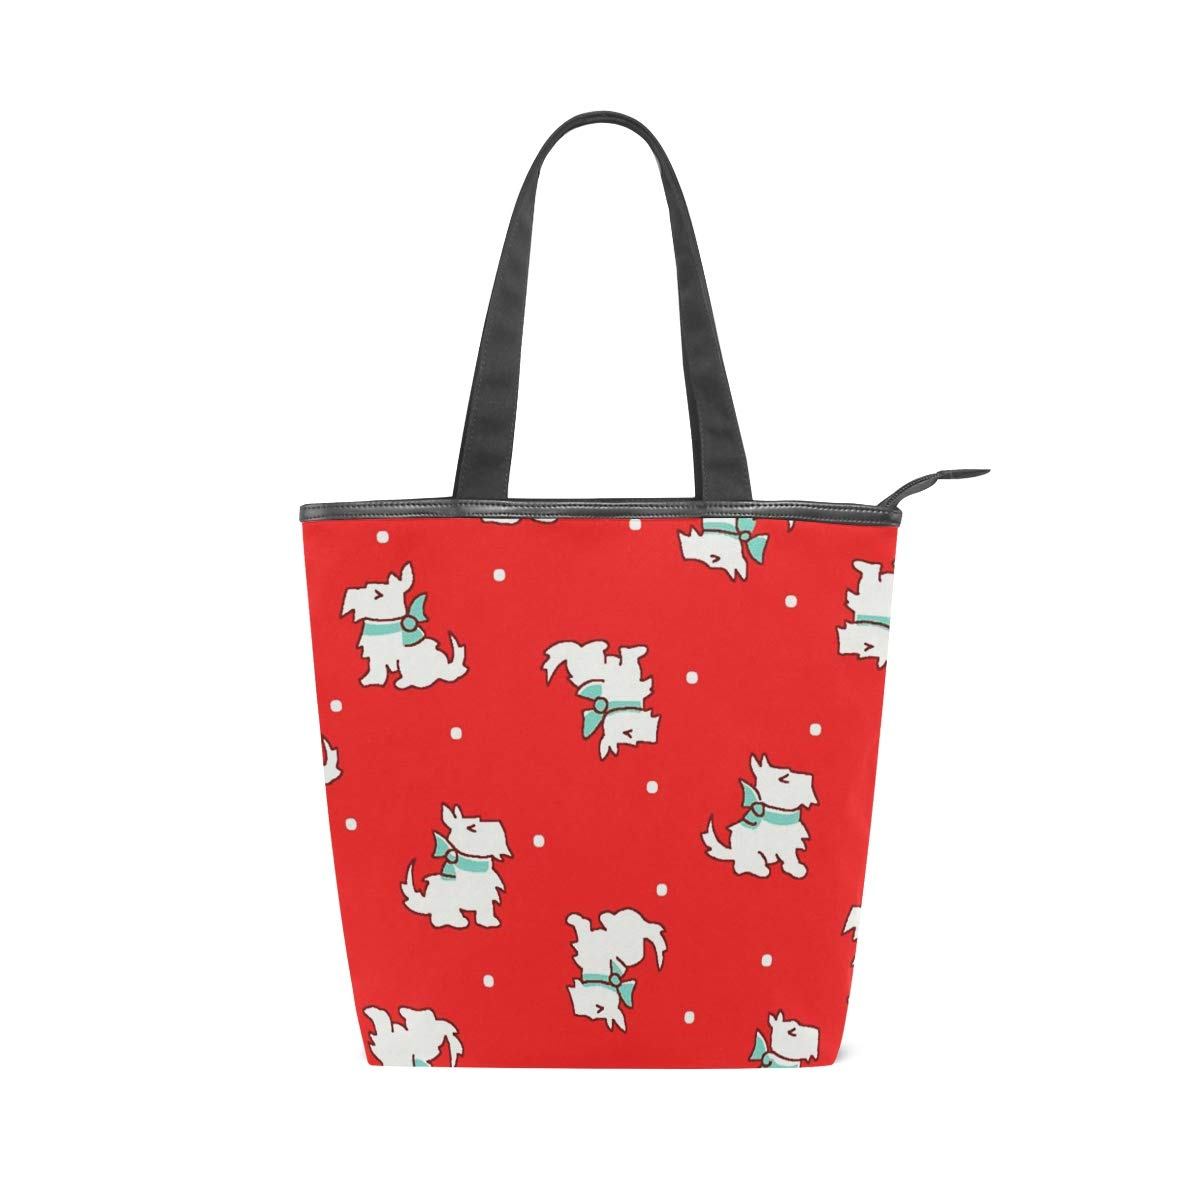 Women Large Tote Top Handle Shoulder Bags Storybook Christmas Scottie Dogs Red Satchel Handbag